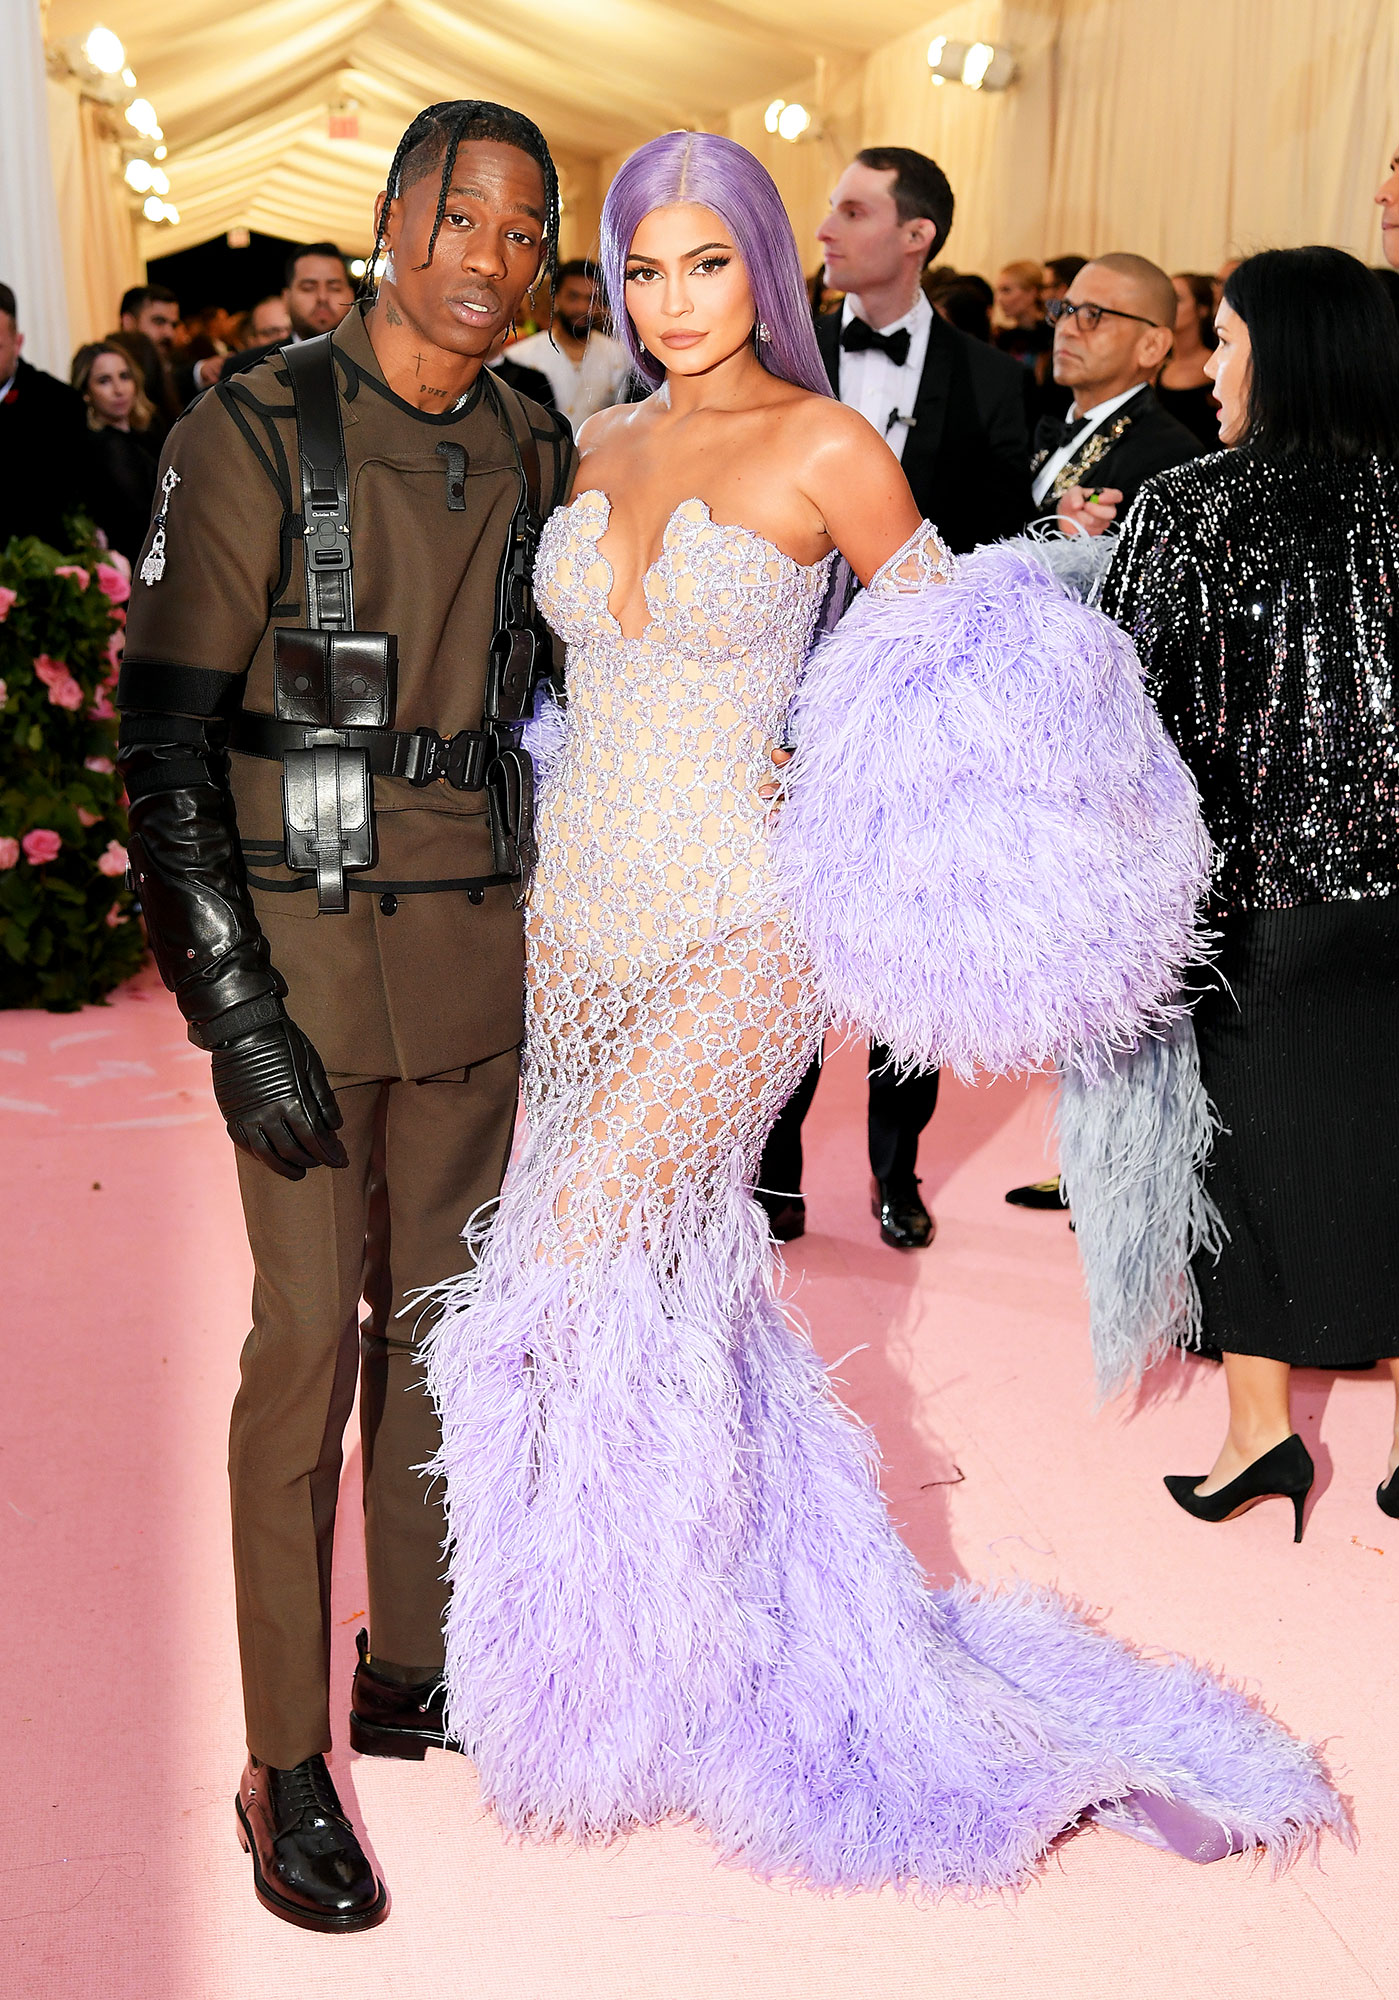 Travis Scott and Kylie Jenner met gala 2019 couples - Travis Scott and Kylie Jenner attend The 2019 Met Gala Celebrating Camp: Notes on Fashion at Metropolitan Museum of Art on May 06, 2019 in New York City.